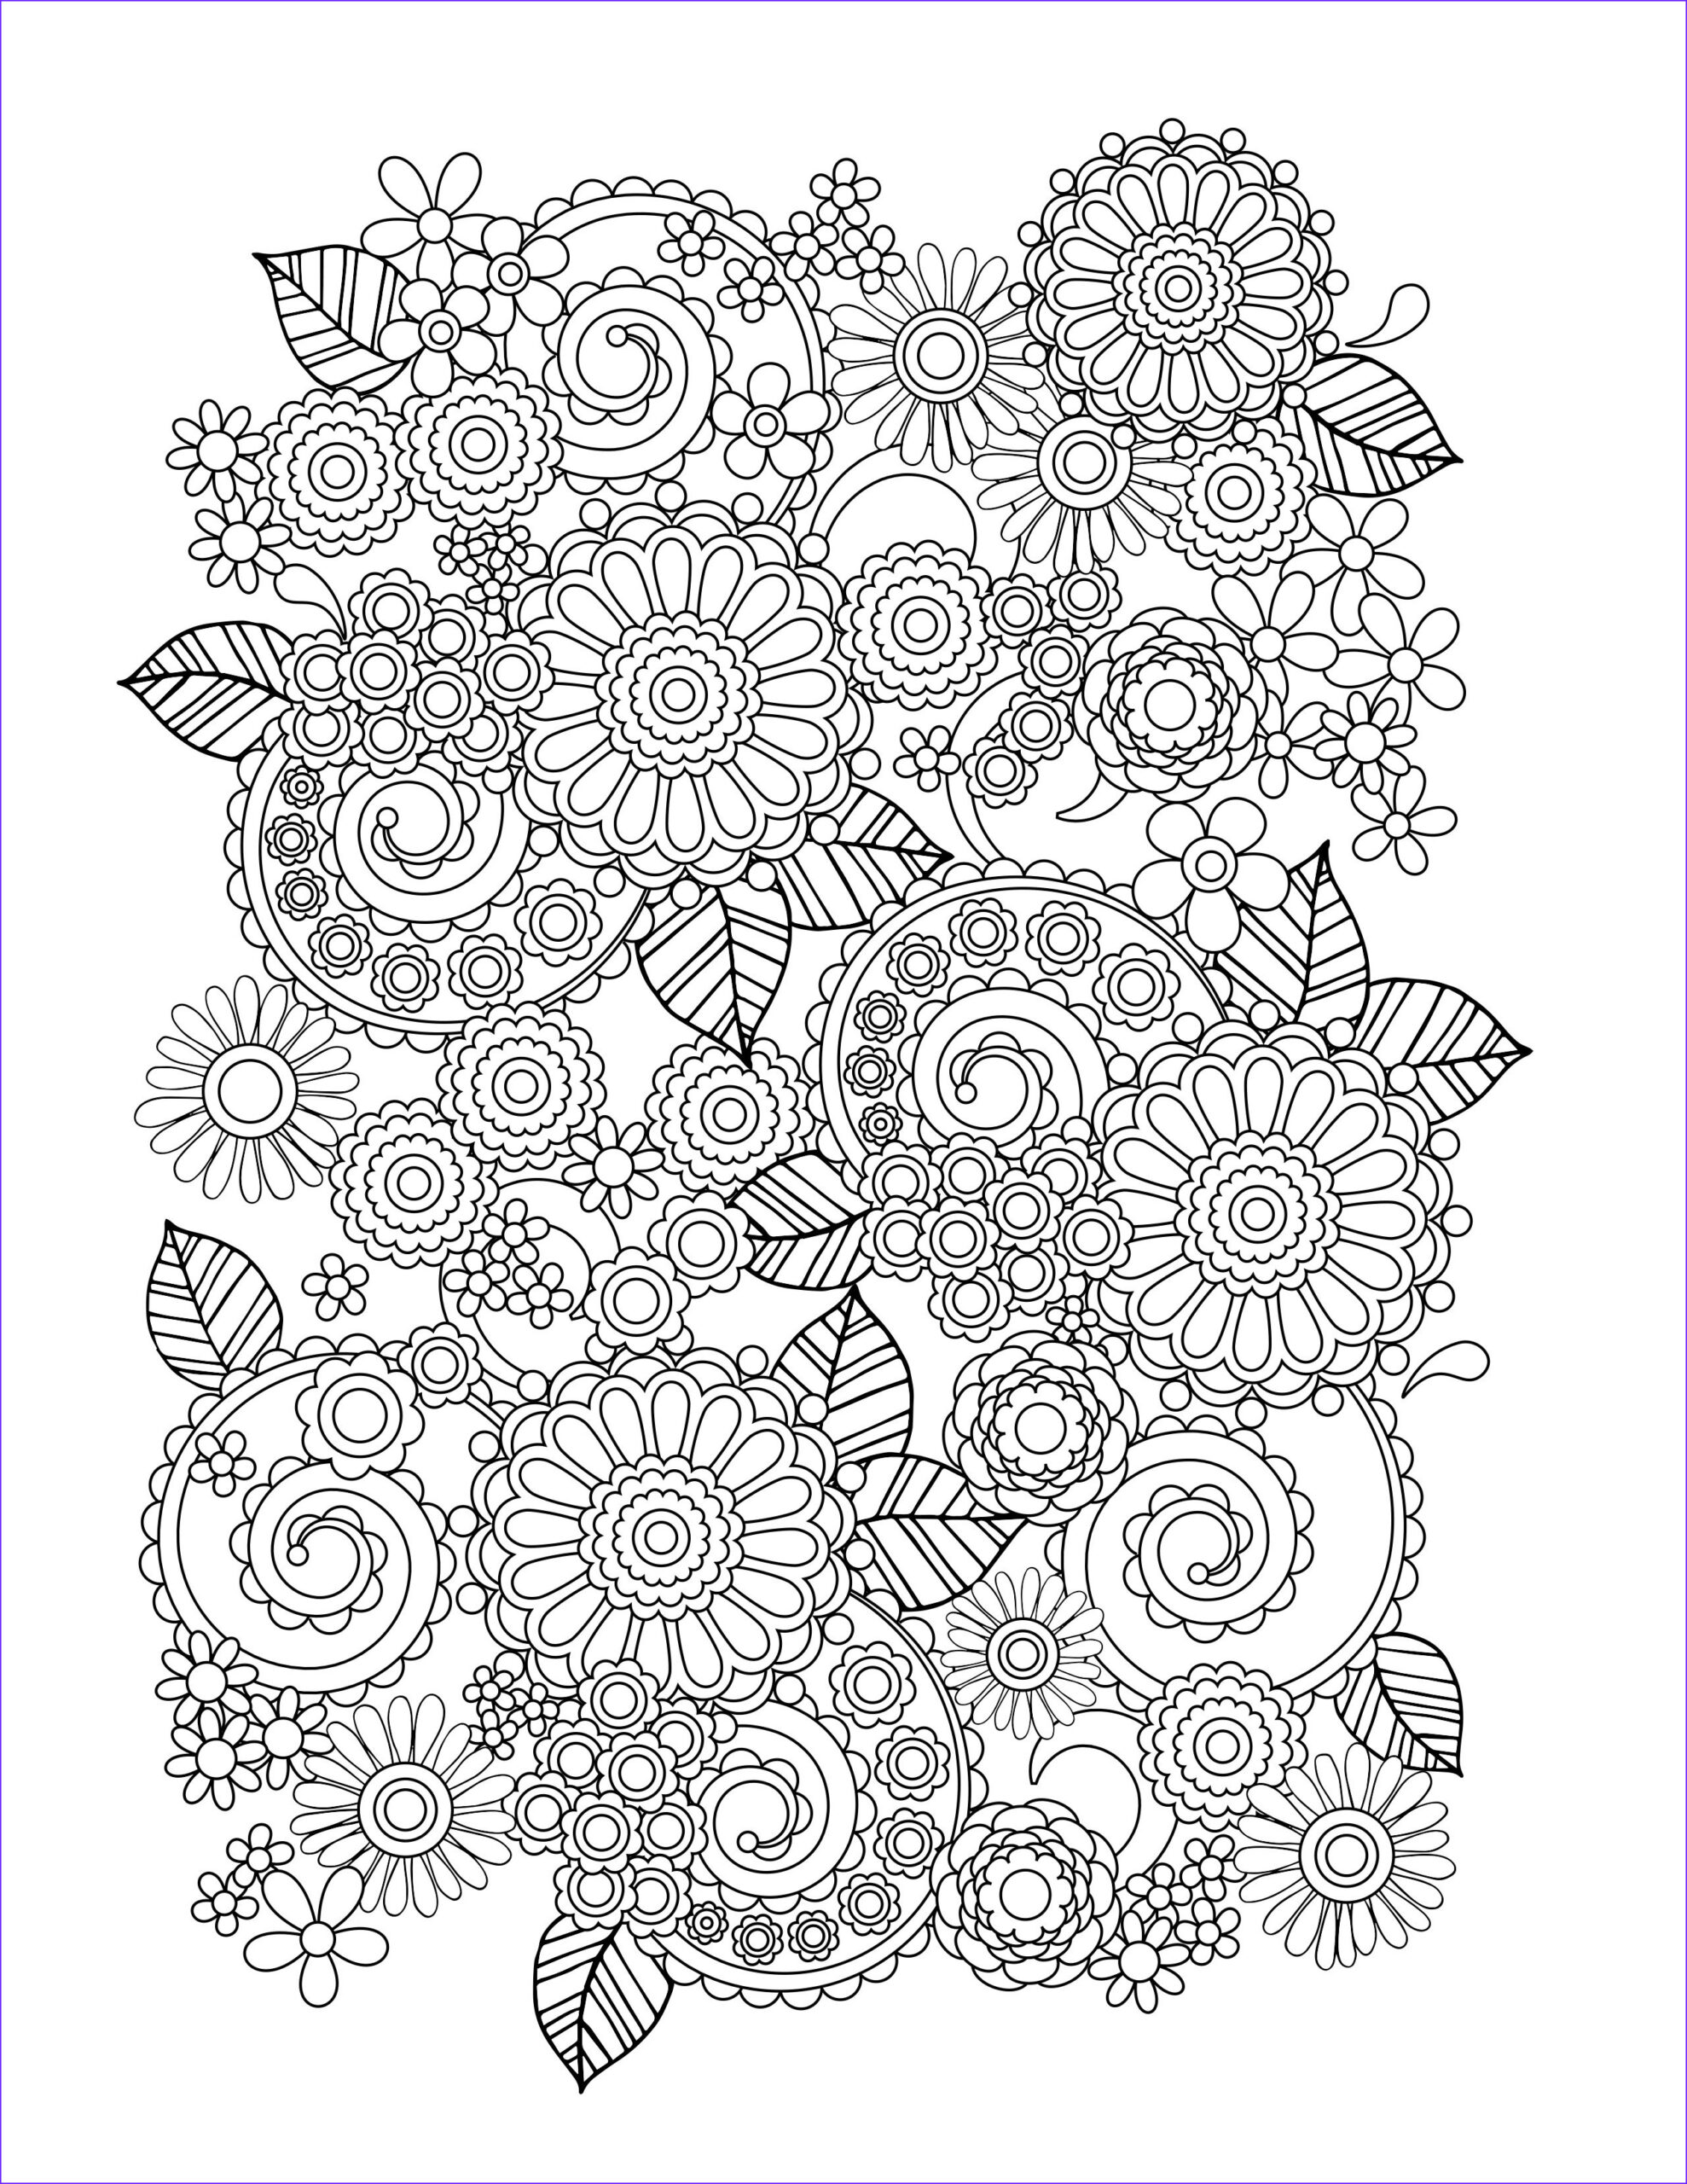 Adult Coloring Pages Flowers Luxury Gallery Flower Coloring Pages for Adults Best Coloring Pages for